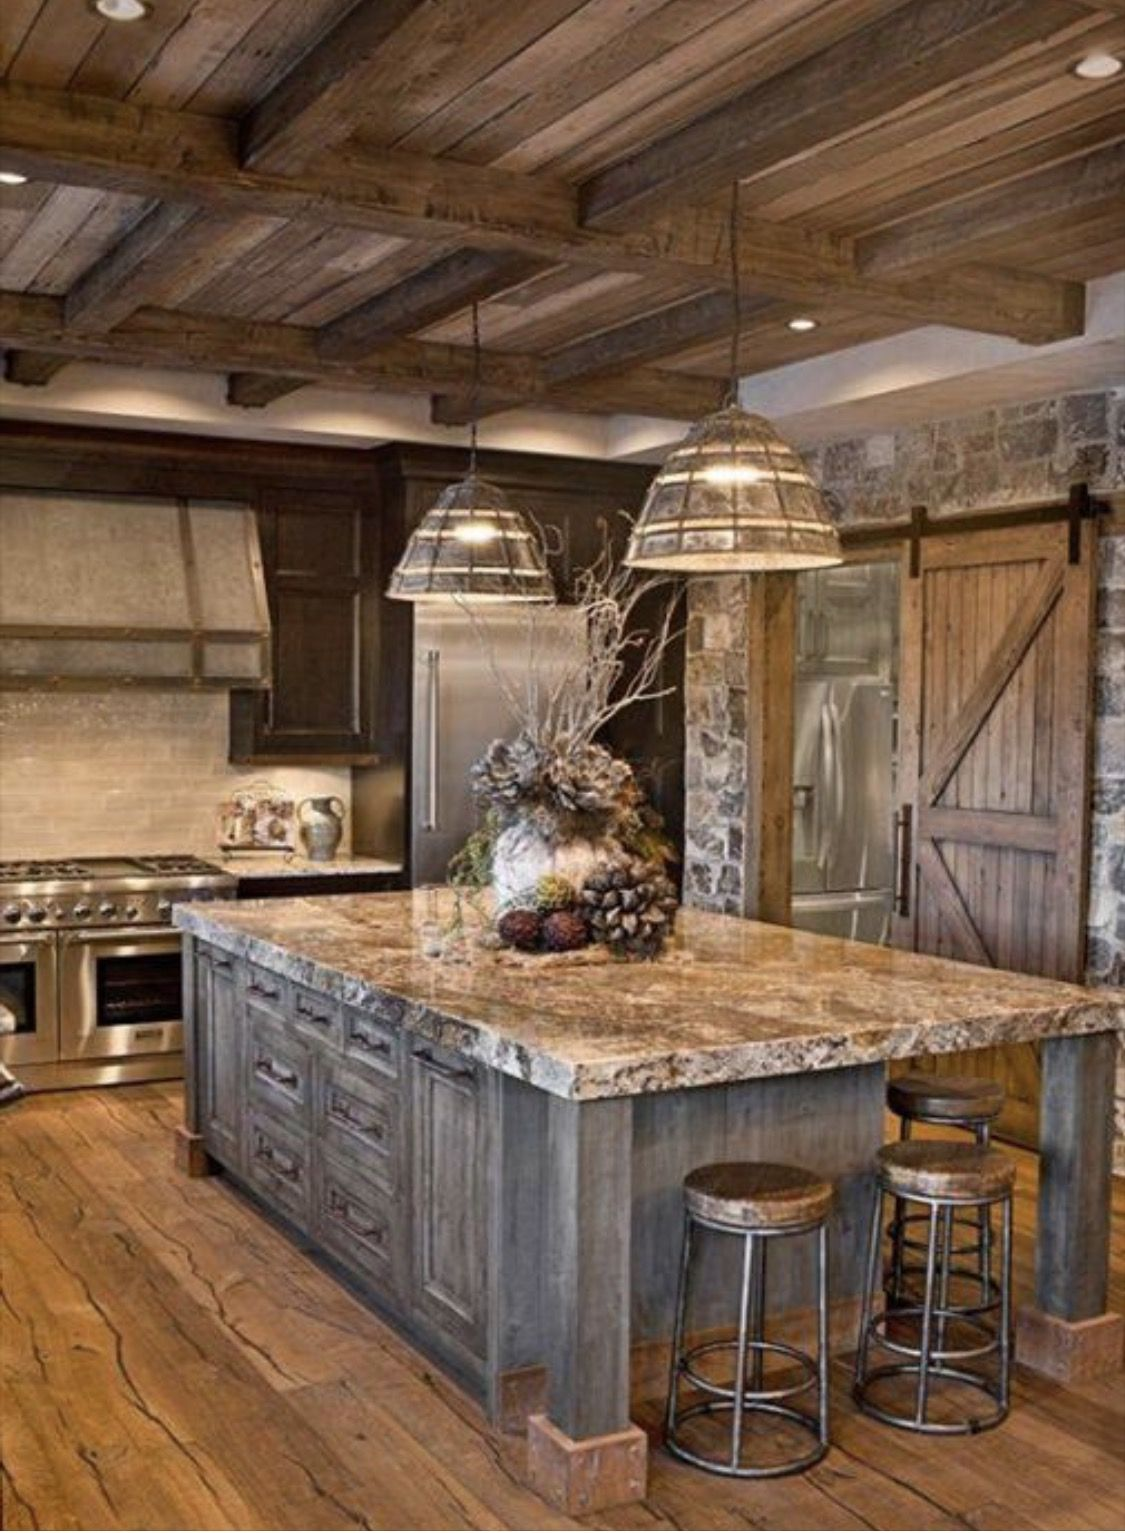 Pin di Amy Church su Kitchen | Pinterest | Interni casa, Cucine e ...